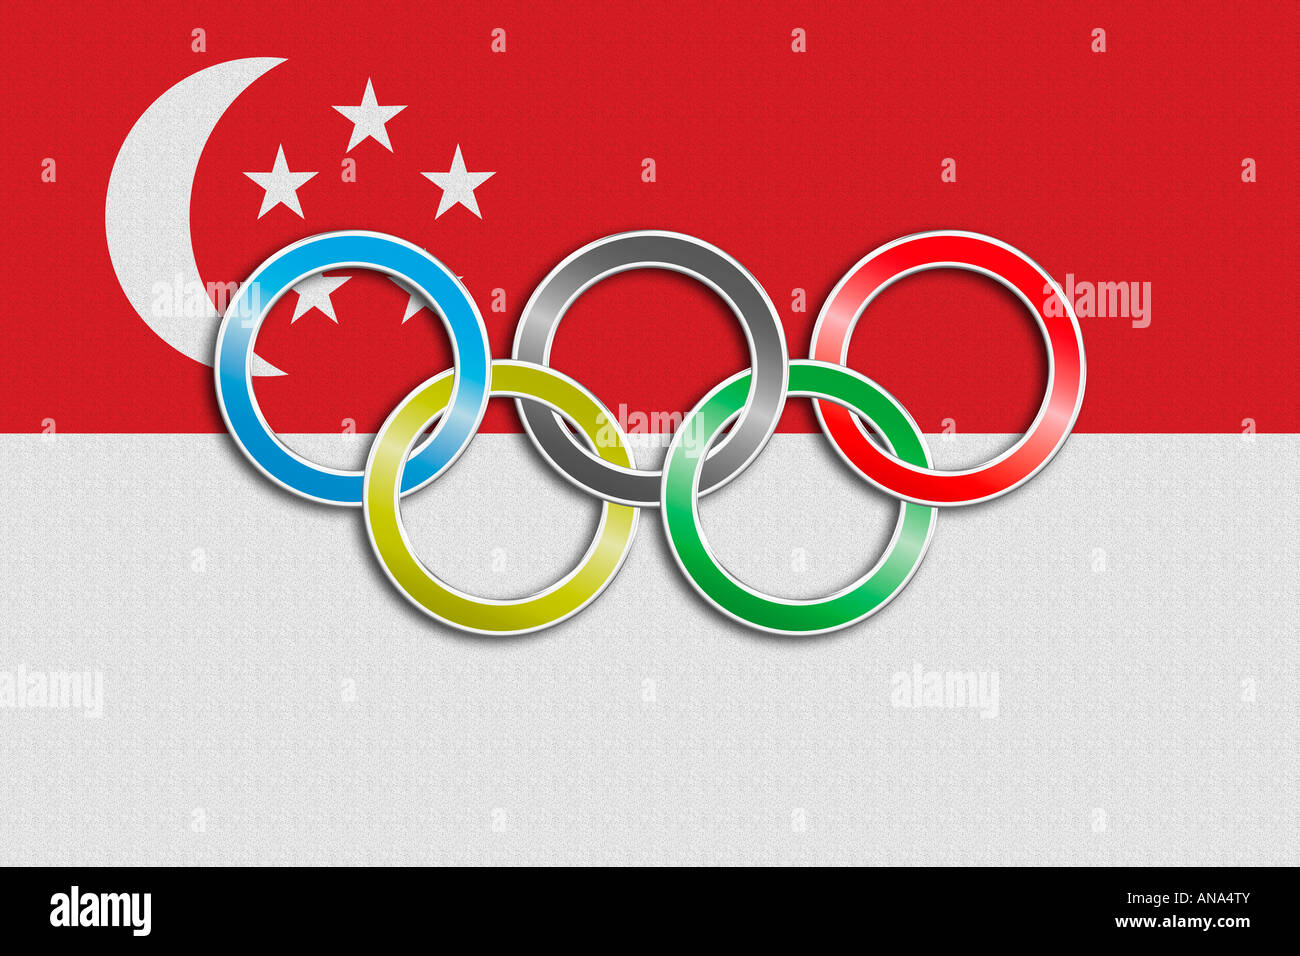 Uncategorized Olympic Symbol flag of singapore with olympic symbol stock photo royalty free symbol